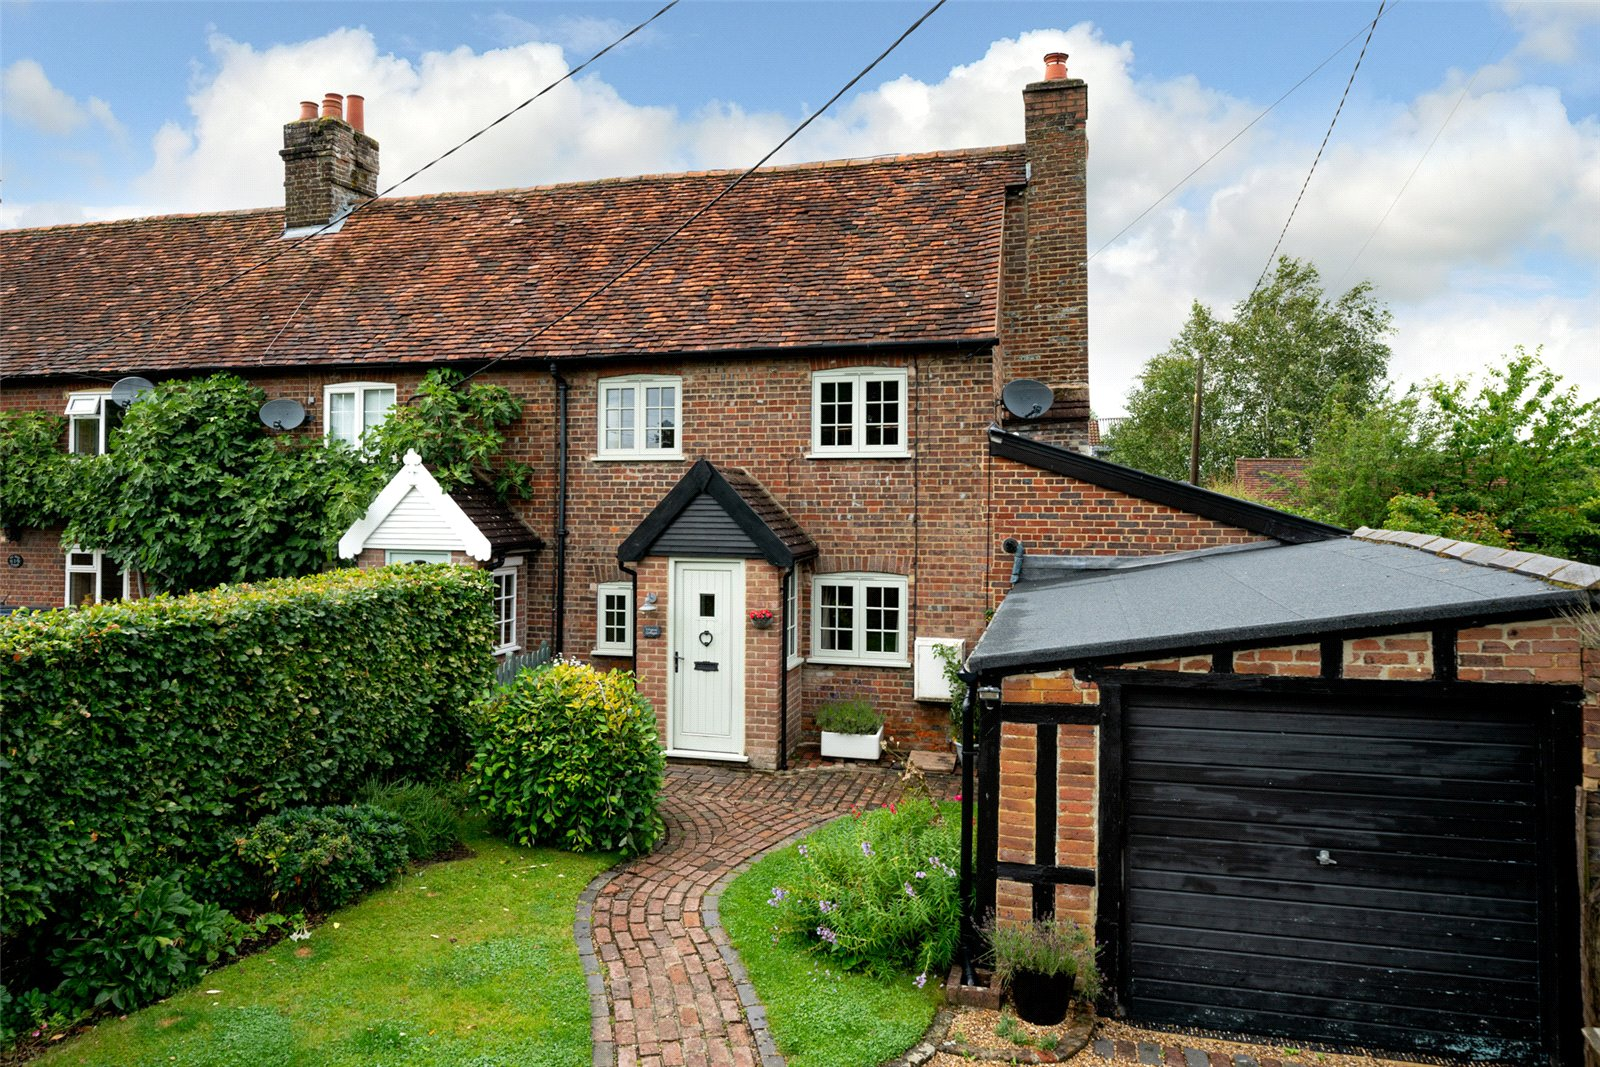 Figtree Cottages Image